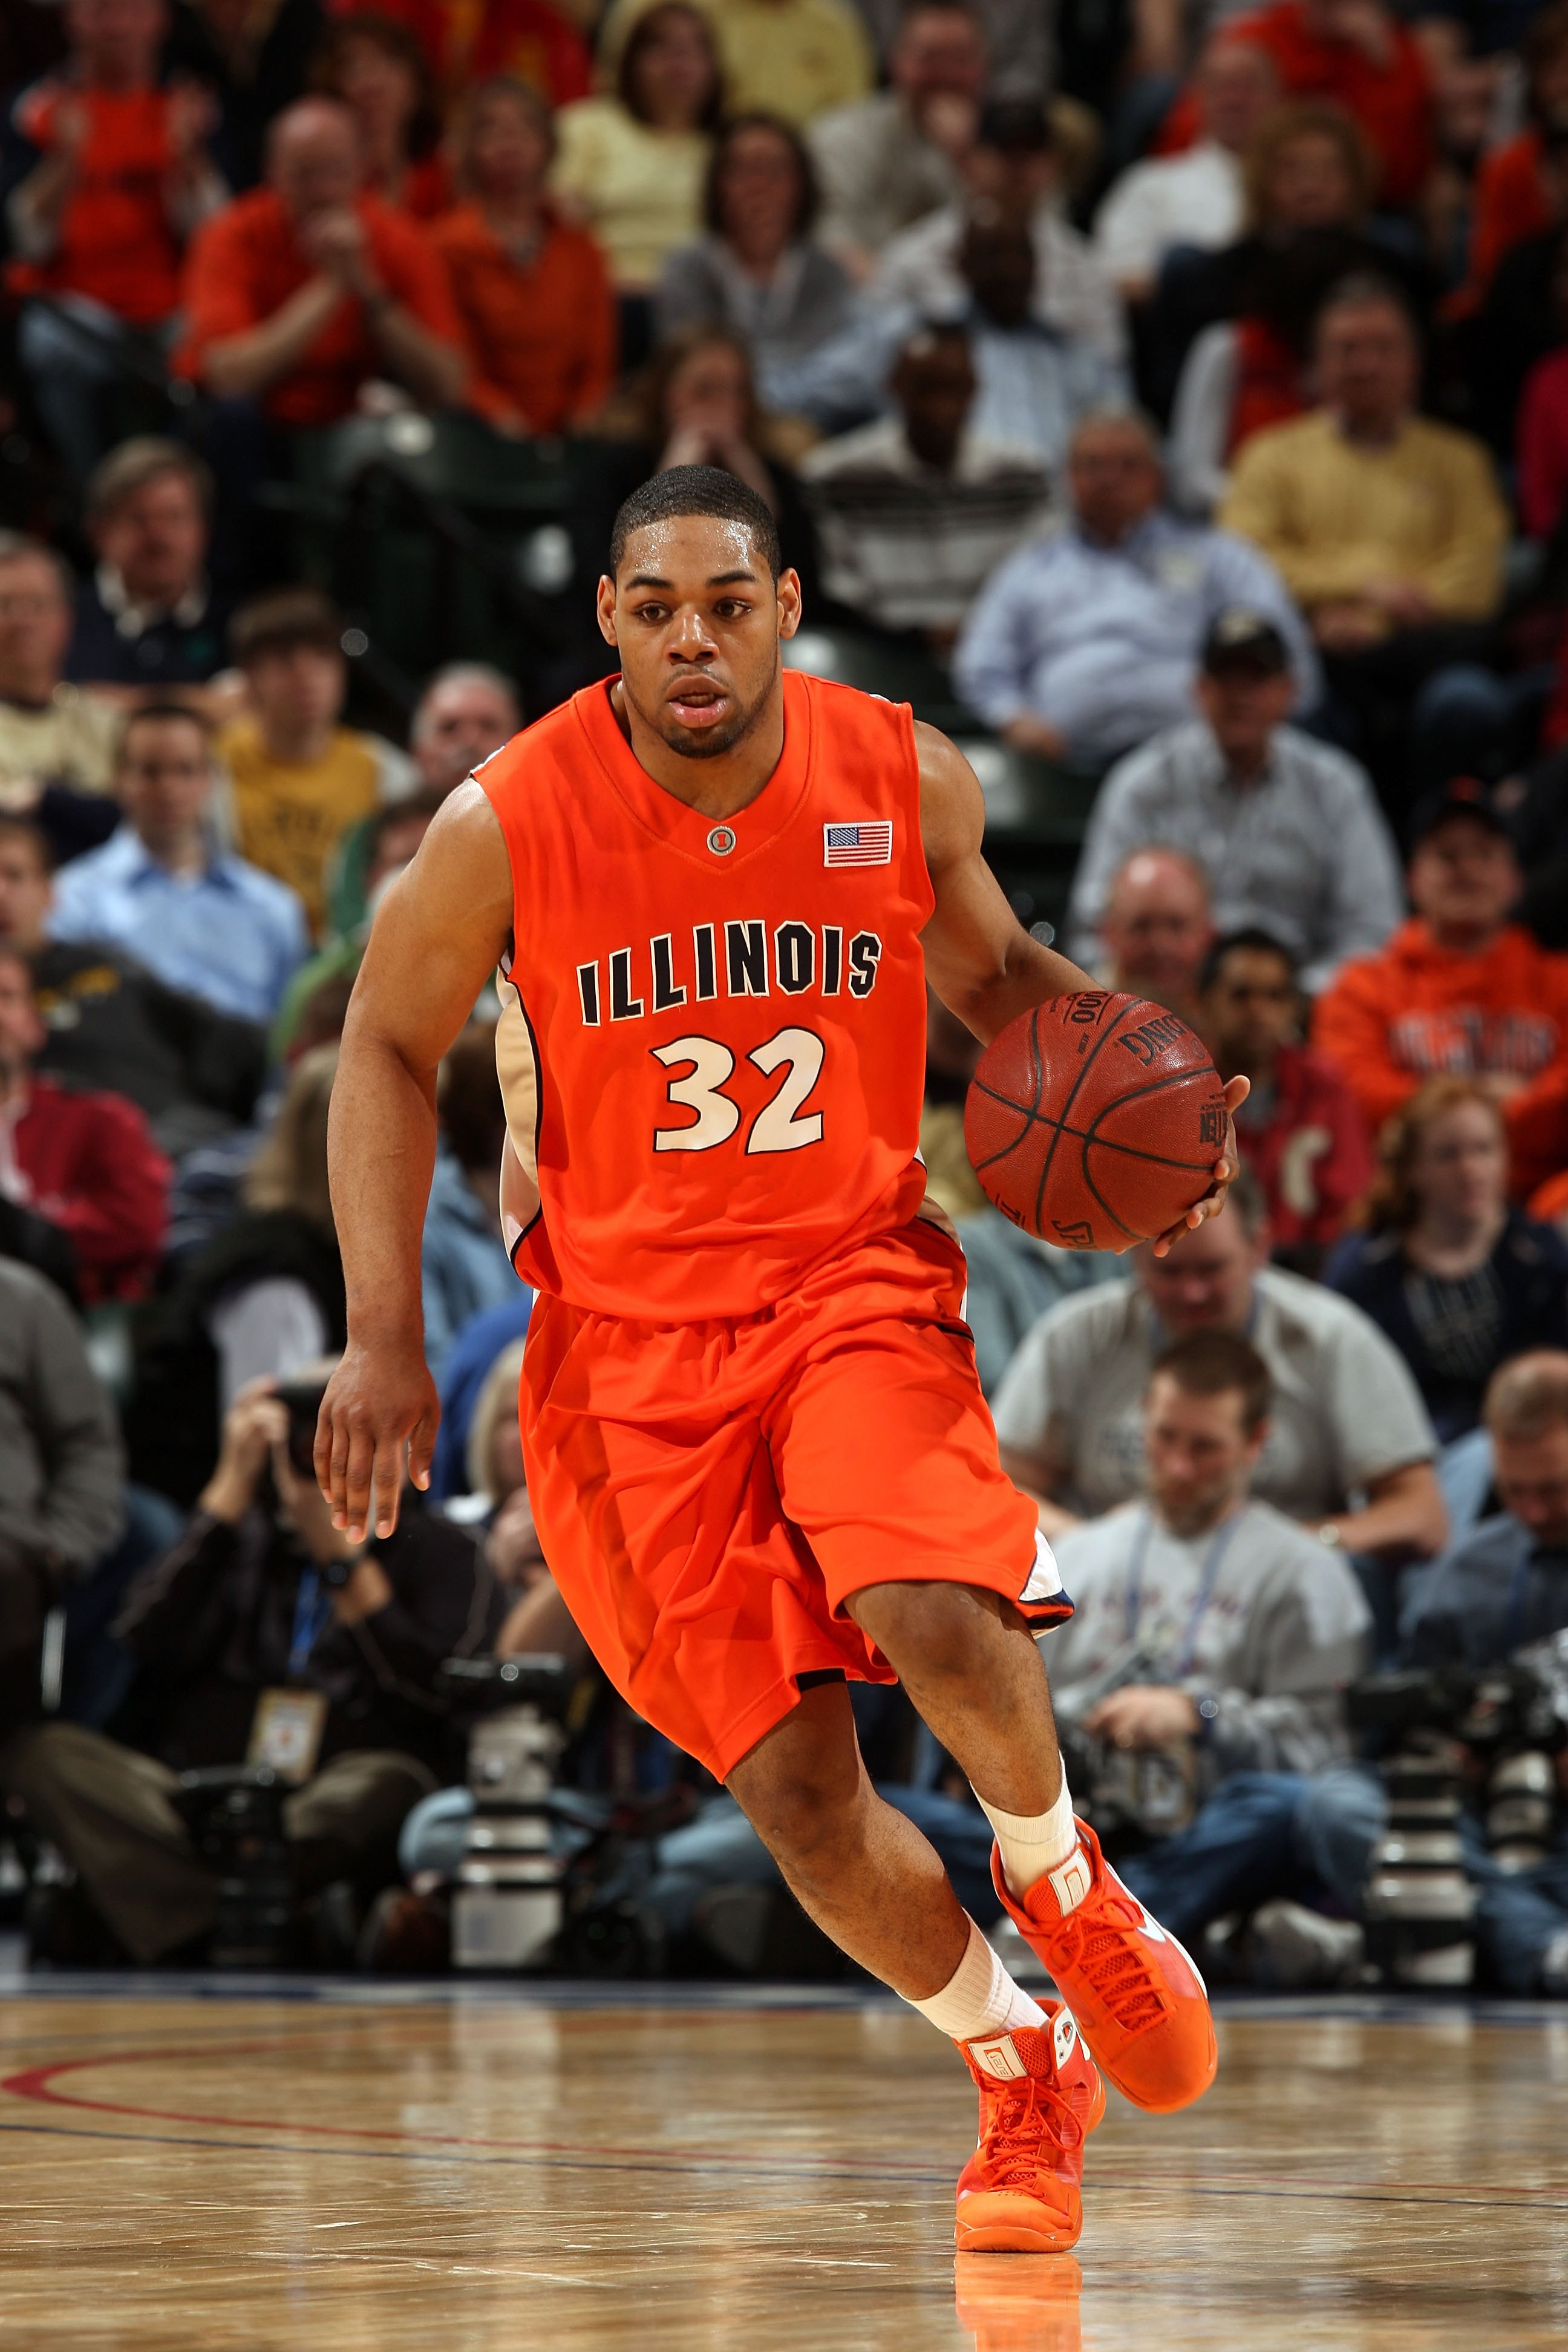 INDIANAPOLIS - MARCH 14:  Demetri McCamey #32 of the Illinois Fighting Illini brings the ball up court against the Purdue Boilermakers during their semifinal game of the Big Ten Men's Basketball Tournament at Conseco Fieldhouse on March 14, 2009 in Indian